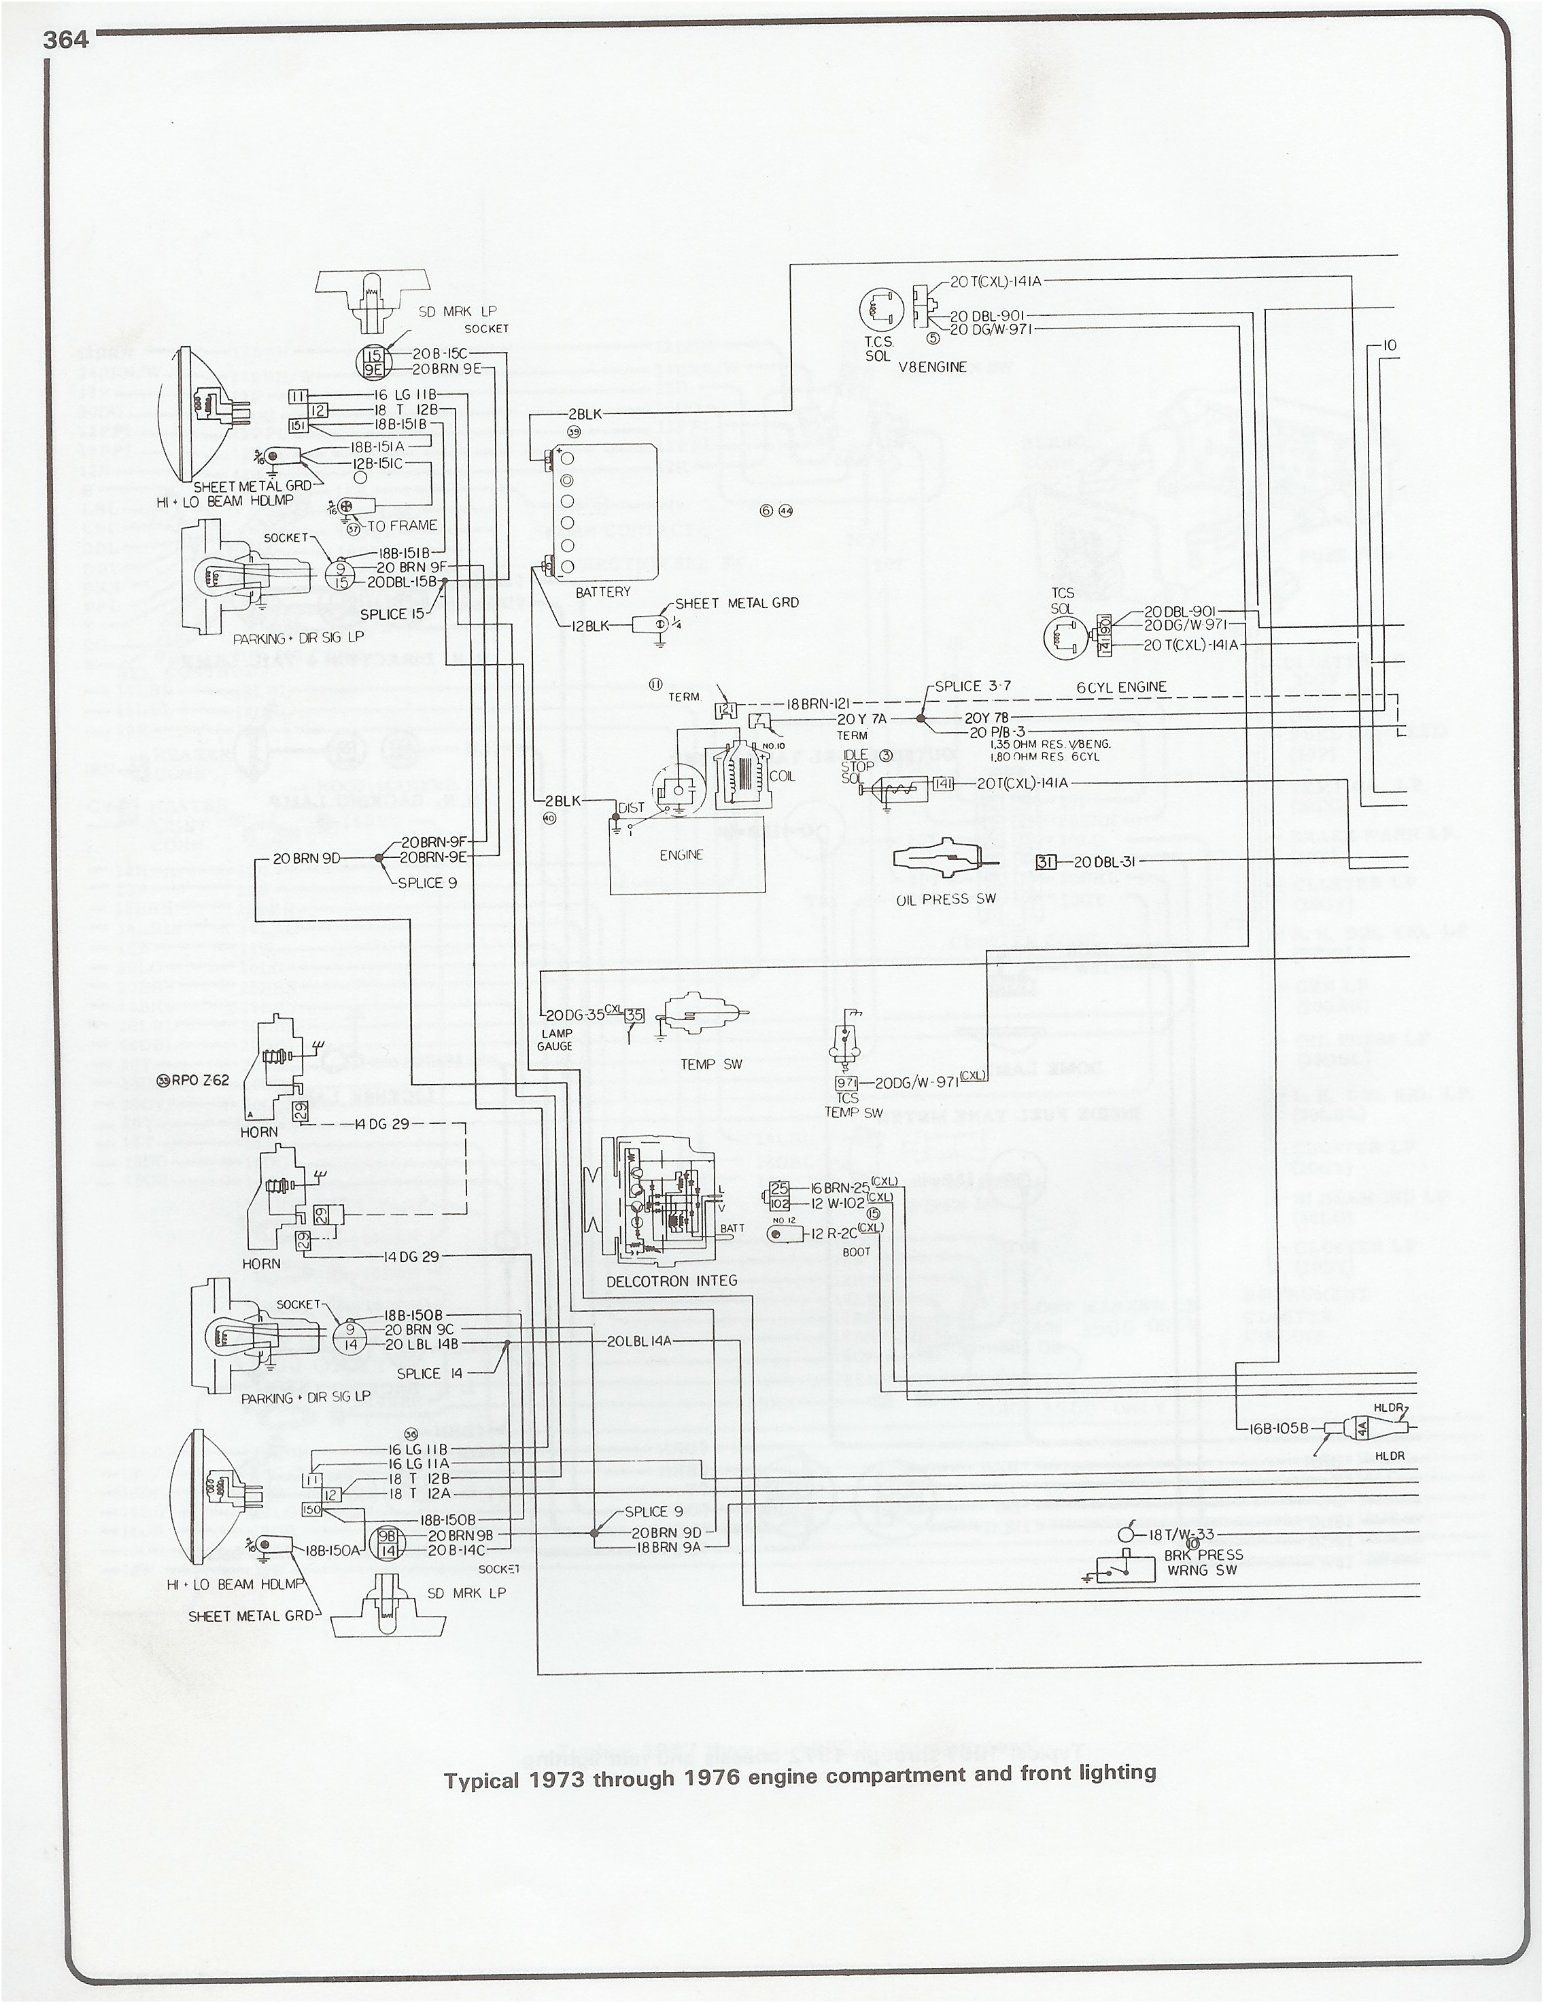 harley oil pressure gauge wiring diagram free download wiring oil pressure gauge wiring diagram 1976 torino [ 1544 x 2003 Pixel ]